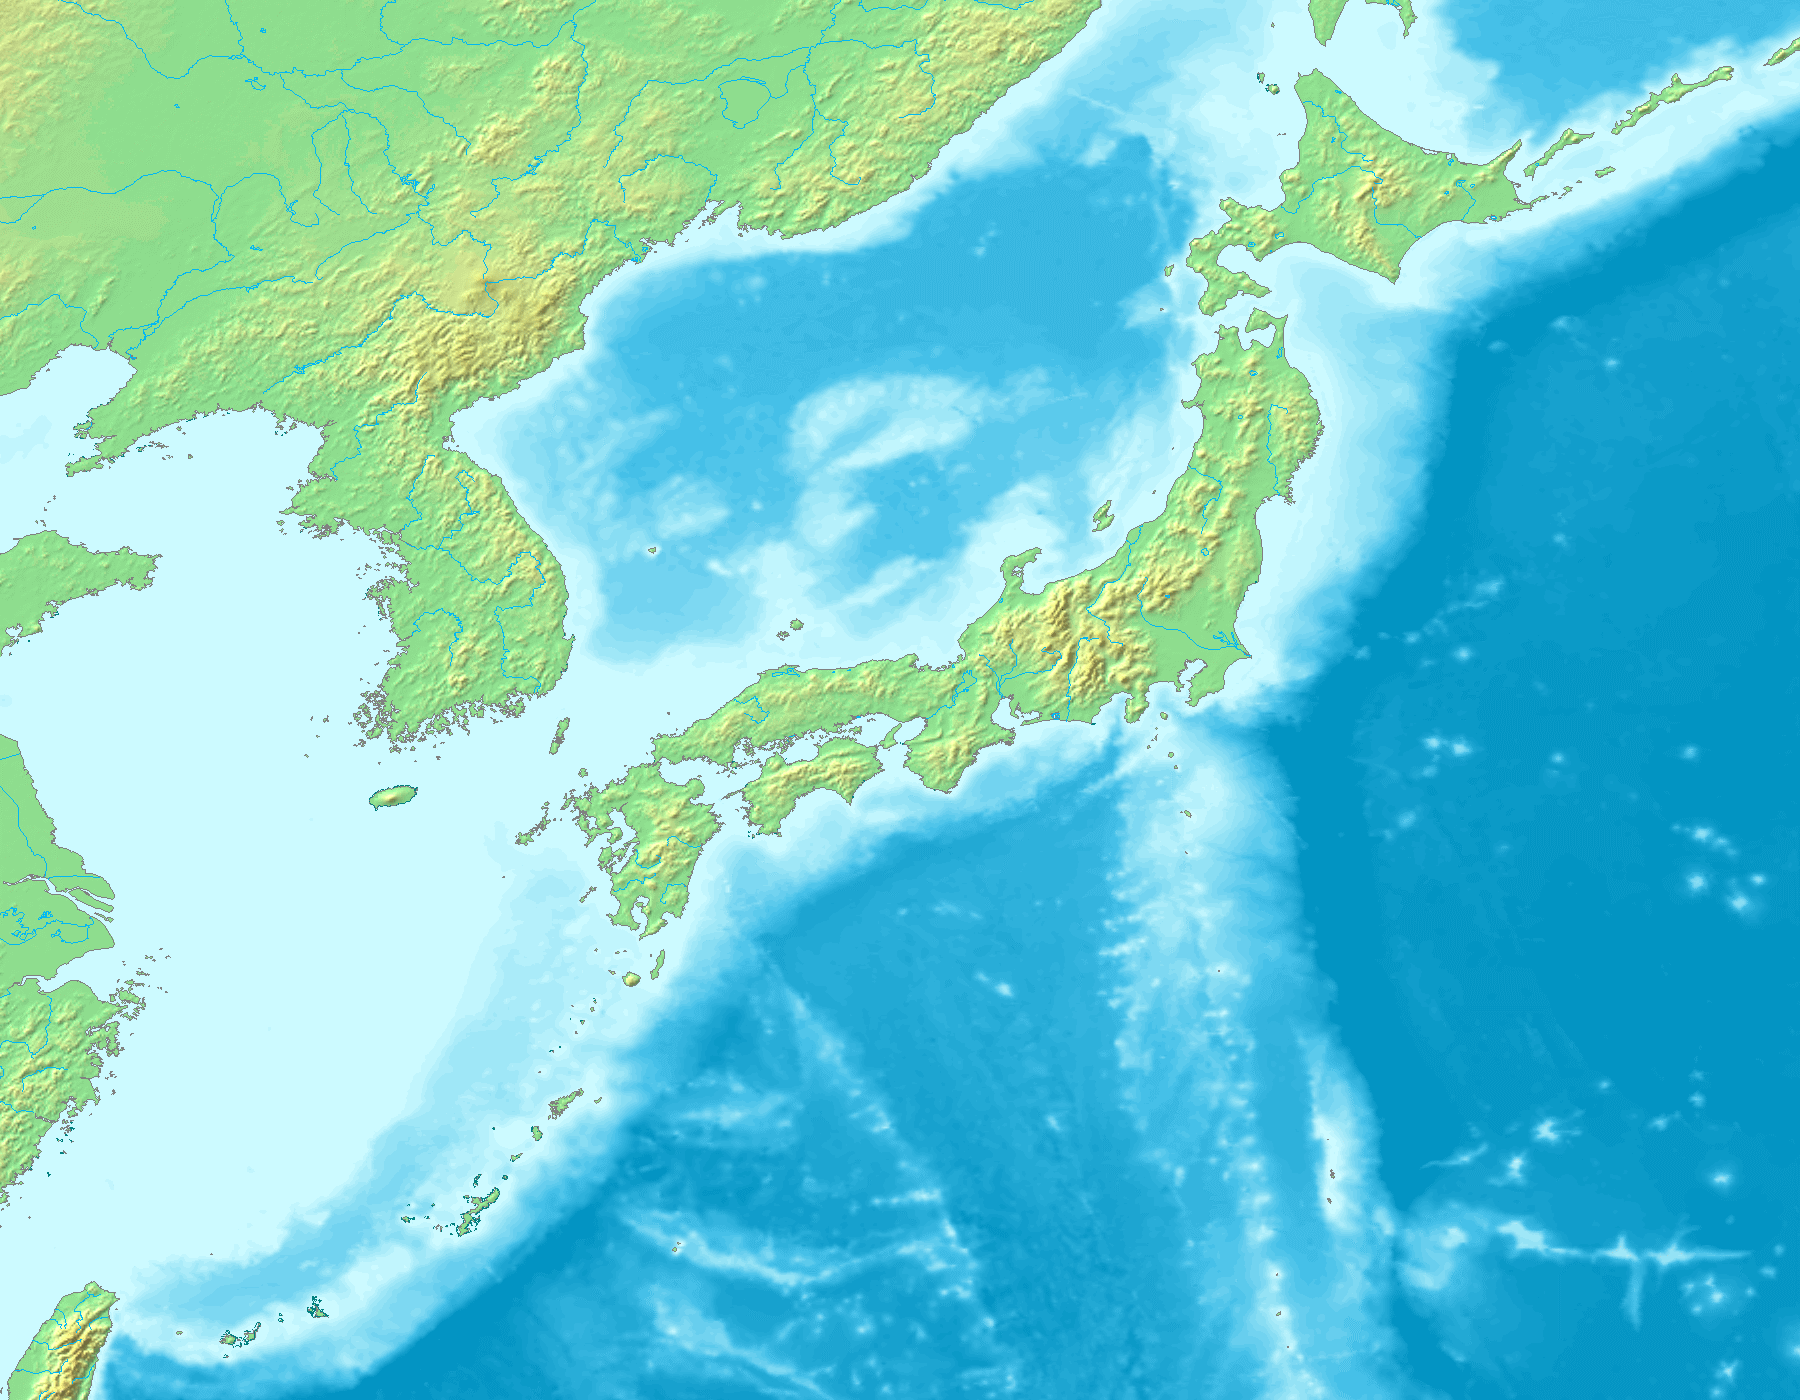 Image Topographic Map Of Japanpng GTA Wiki FANDOM Powered - Topographic map of eastern us